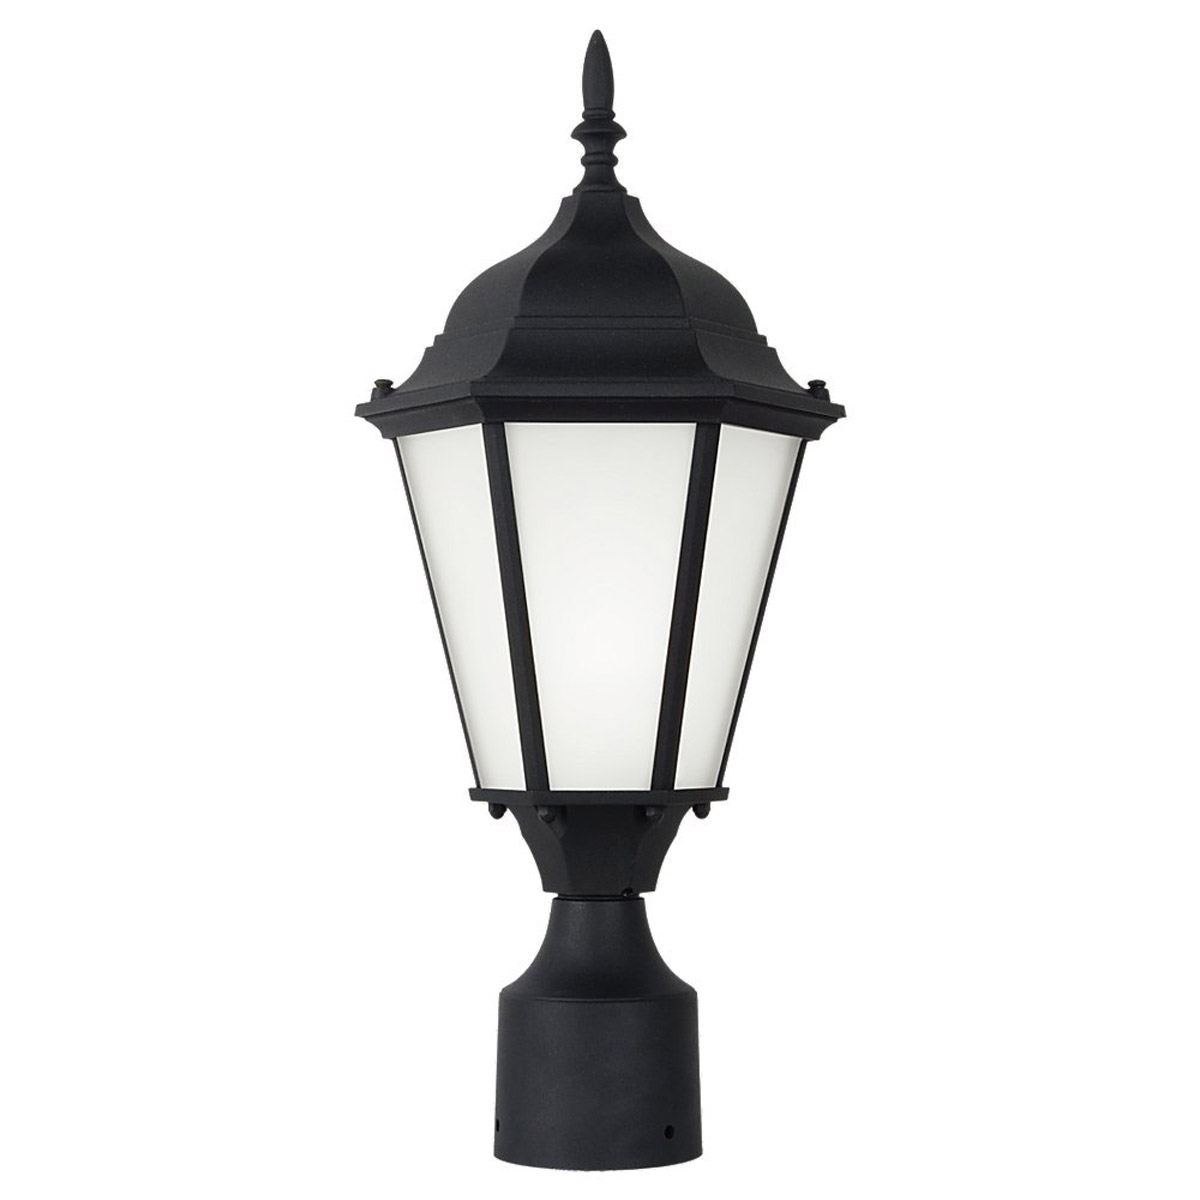 Sea Gull Lighting Bakersville 1 Light Outdoor Post Lantern in Black 82938BL-12 photo